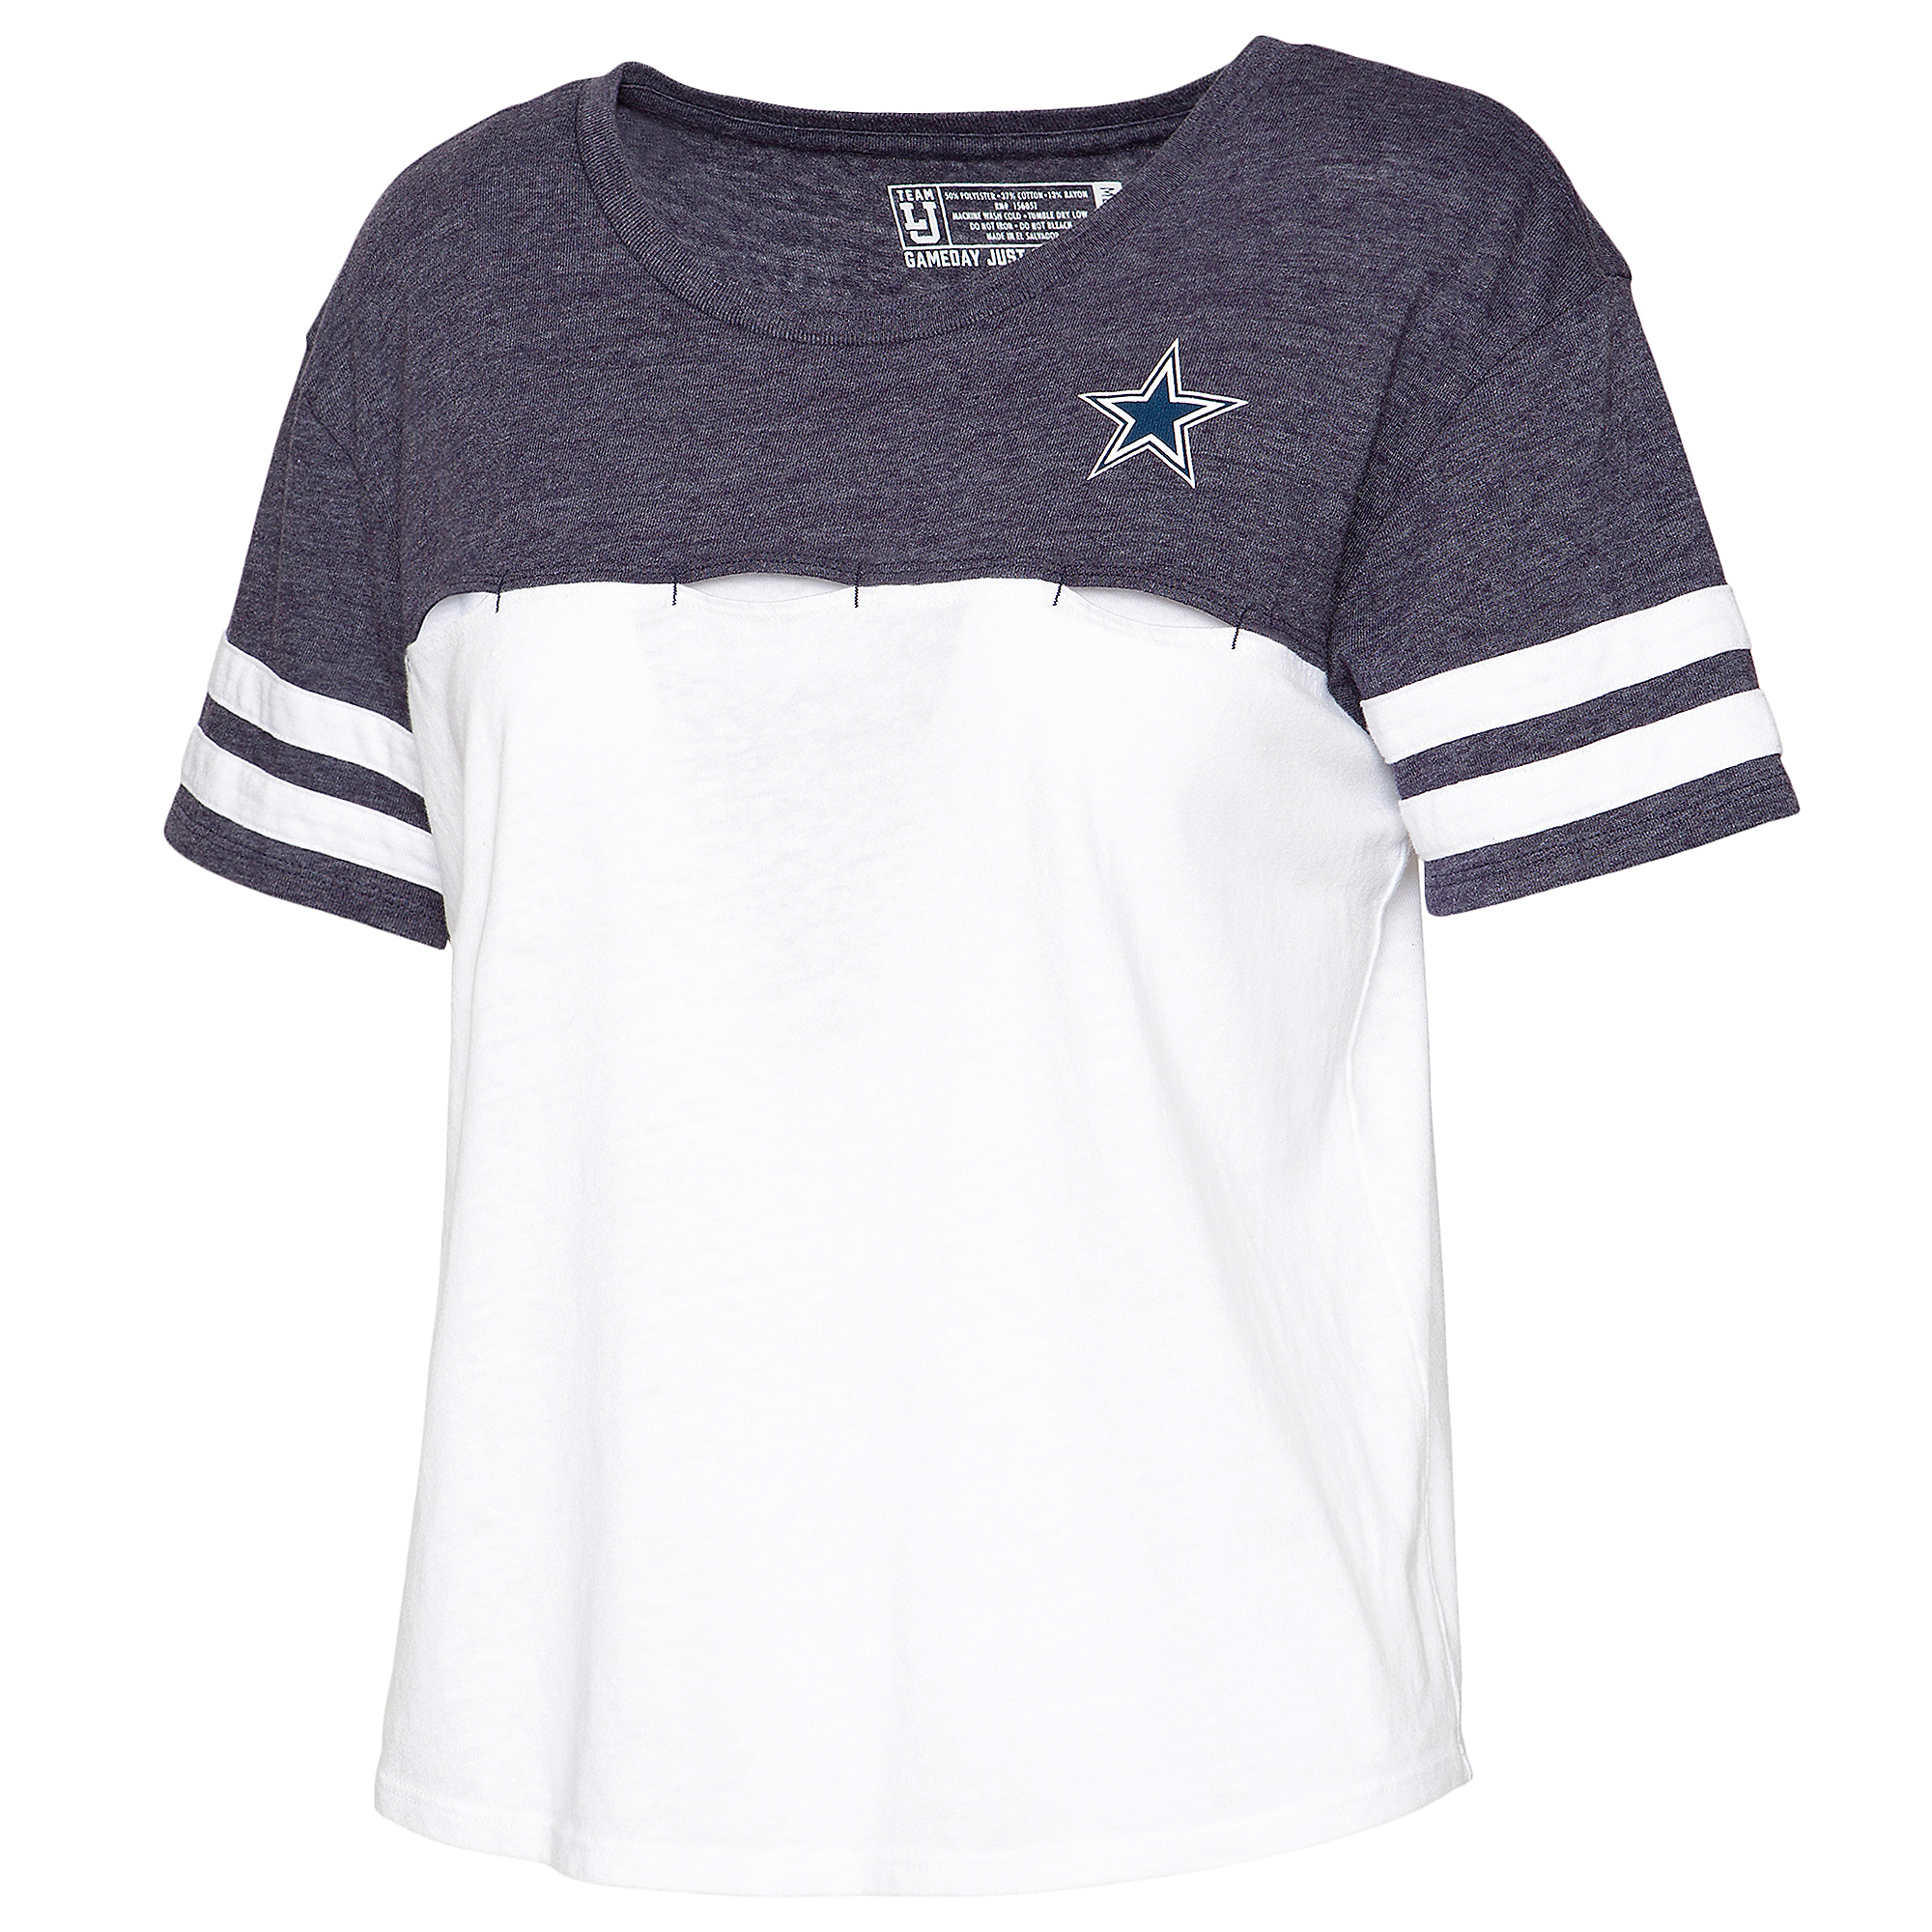 Dallas Cowboys Team LJ Womens Football Crop Top